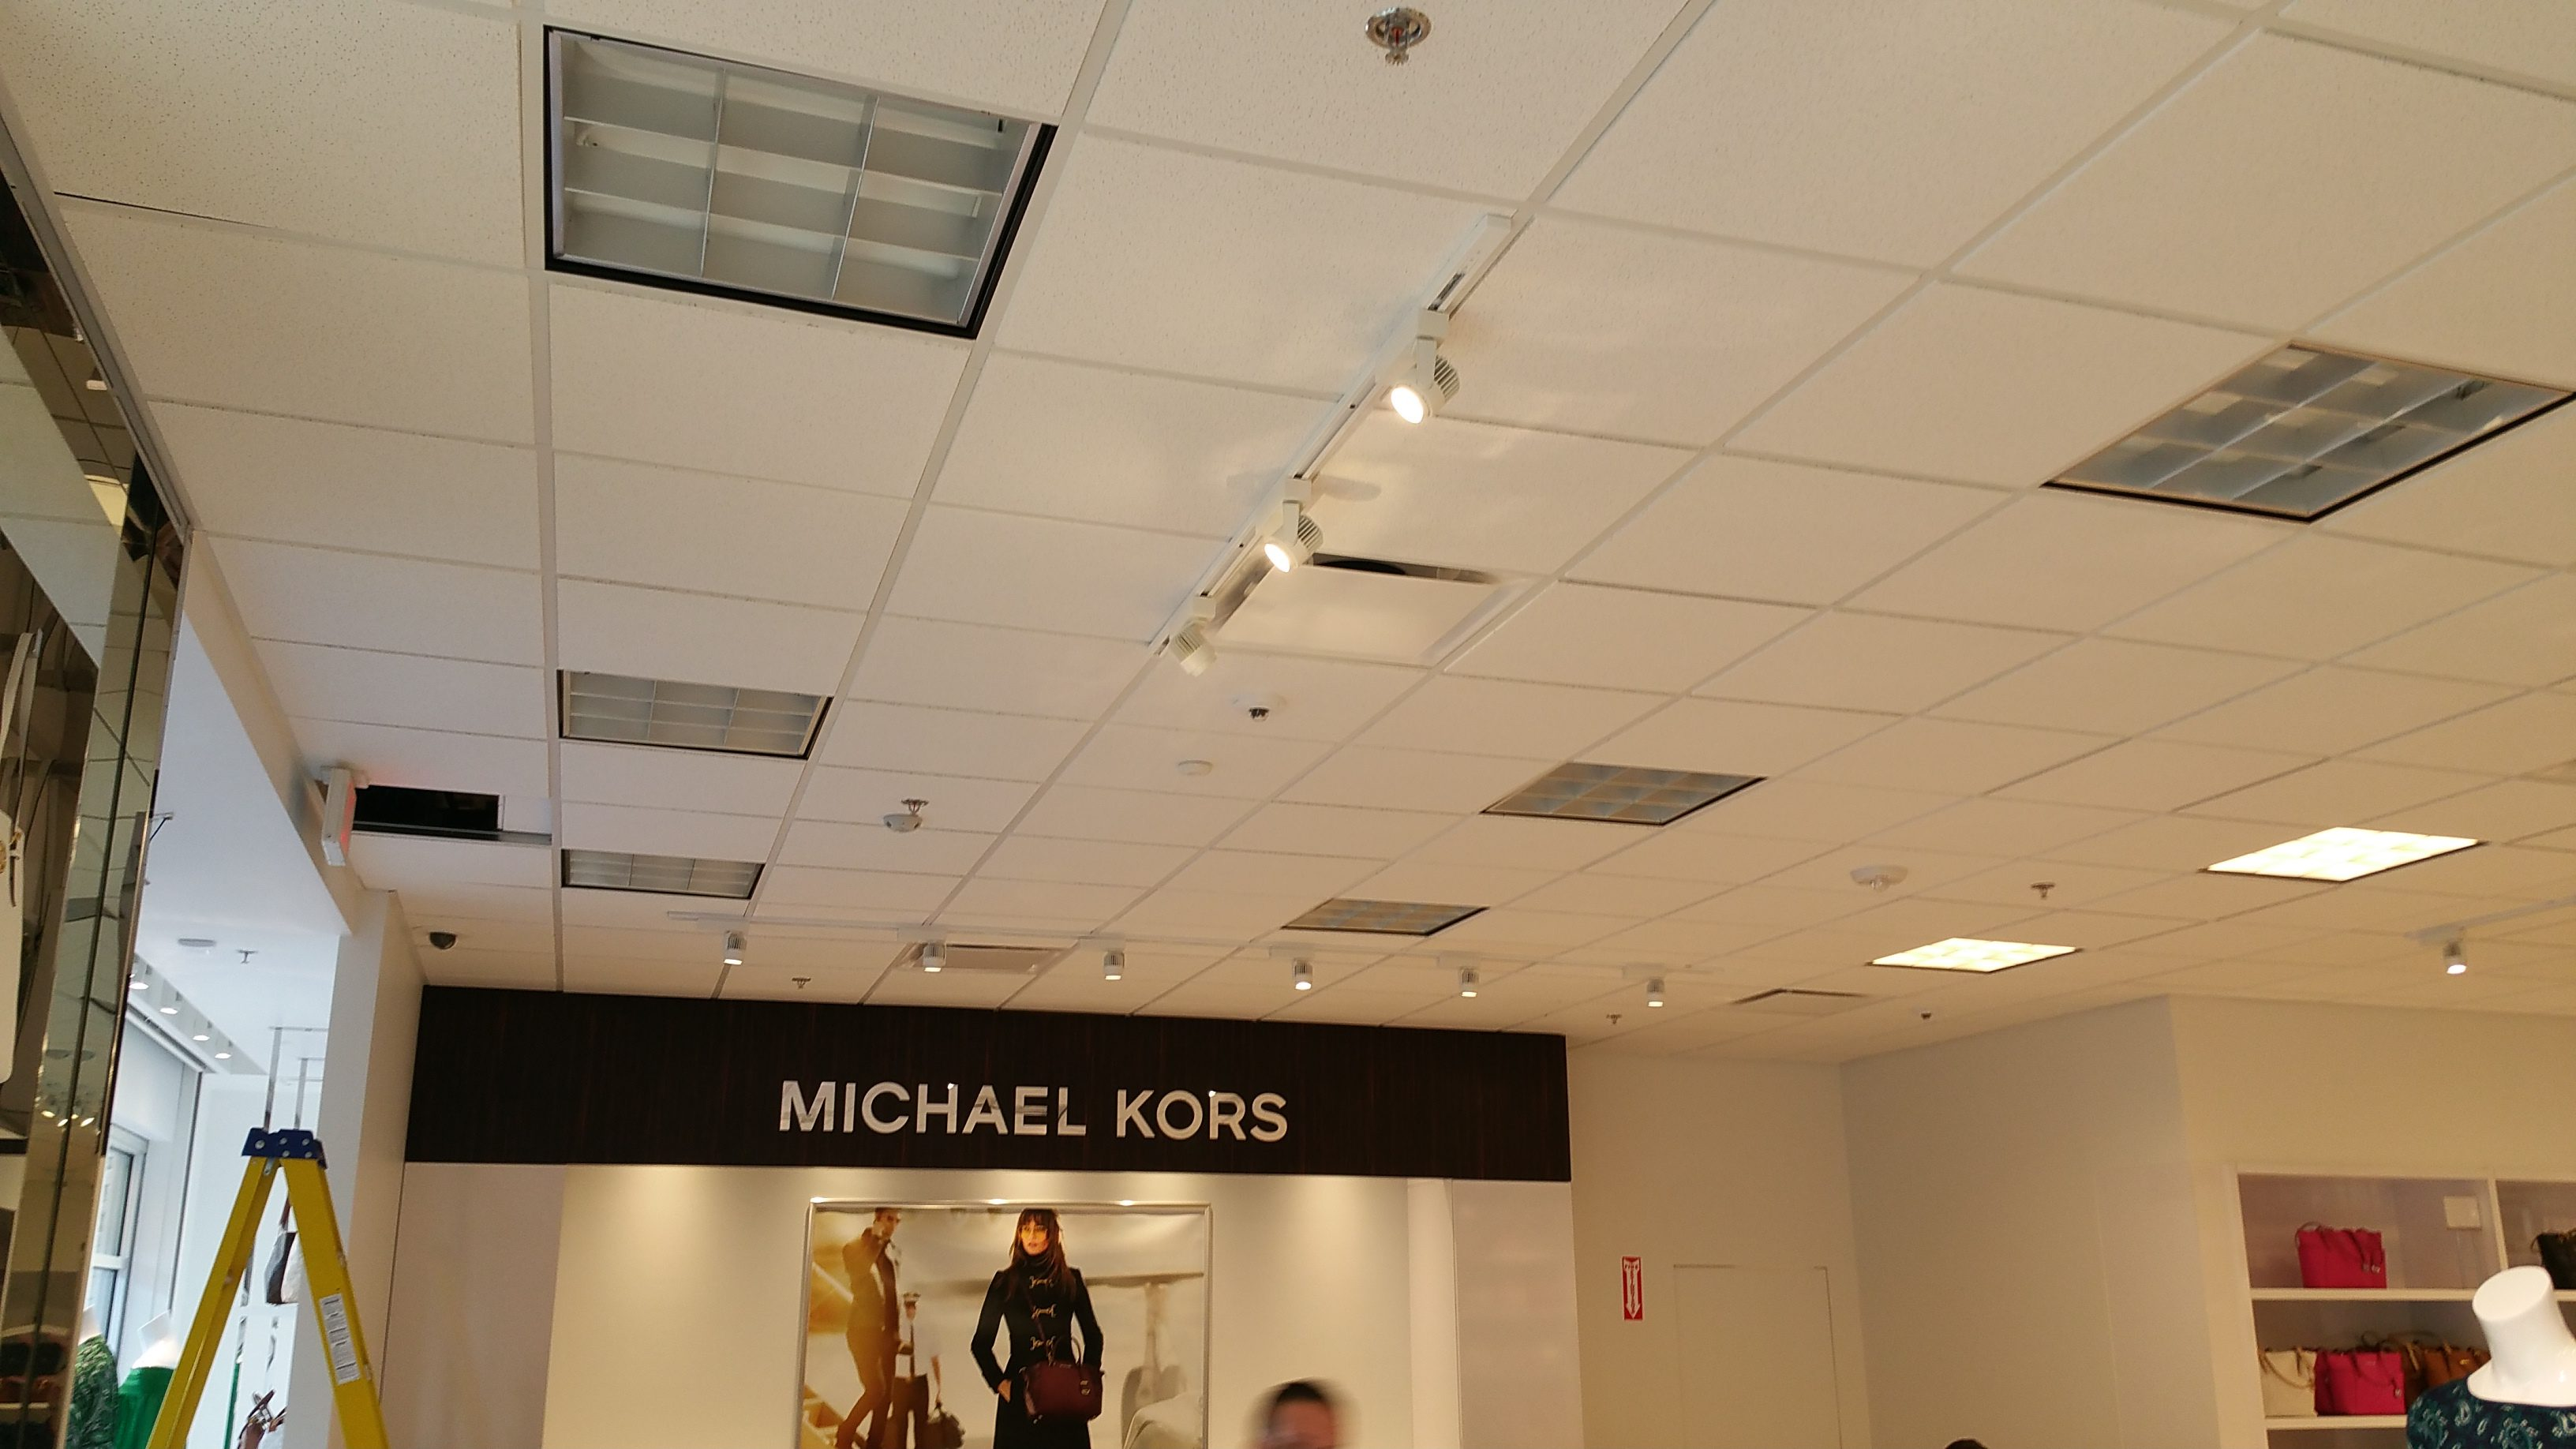 Michael kors livermore project buffalo 39 s mechanical inc for Michaels craft store daly city